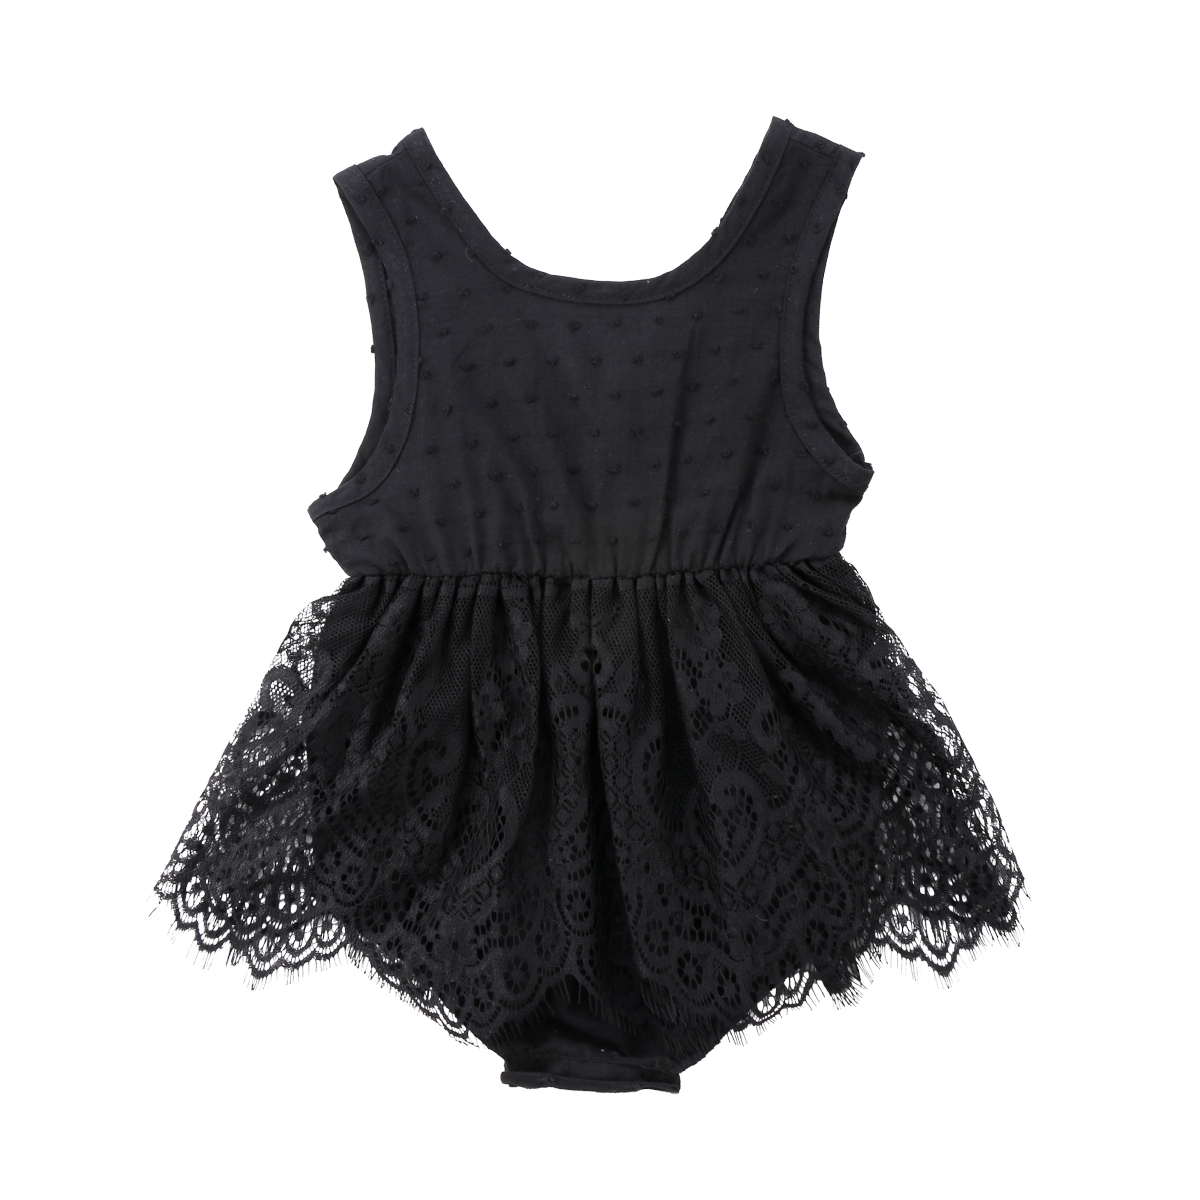 Newborn Infant Baby Girls Clothing Tops Lace   Romper   Sleeveless Cute Ruffles Jumpsuit Outfits Clothes Baby Girl 0-18M